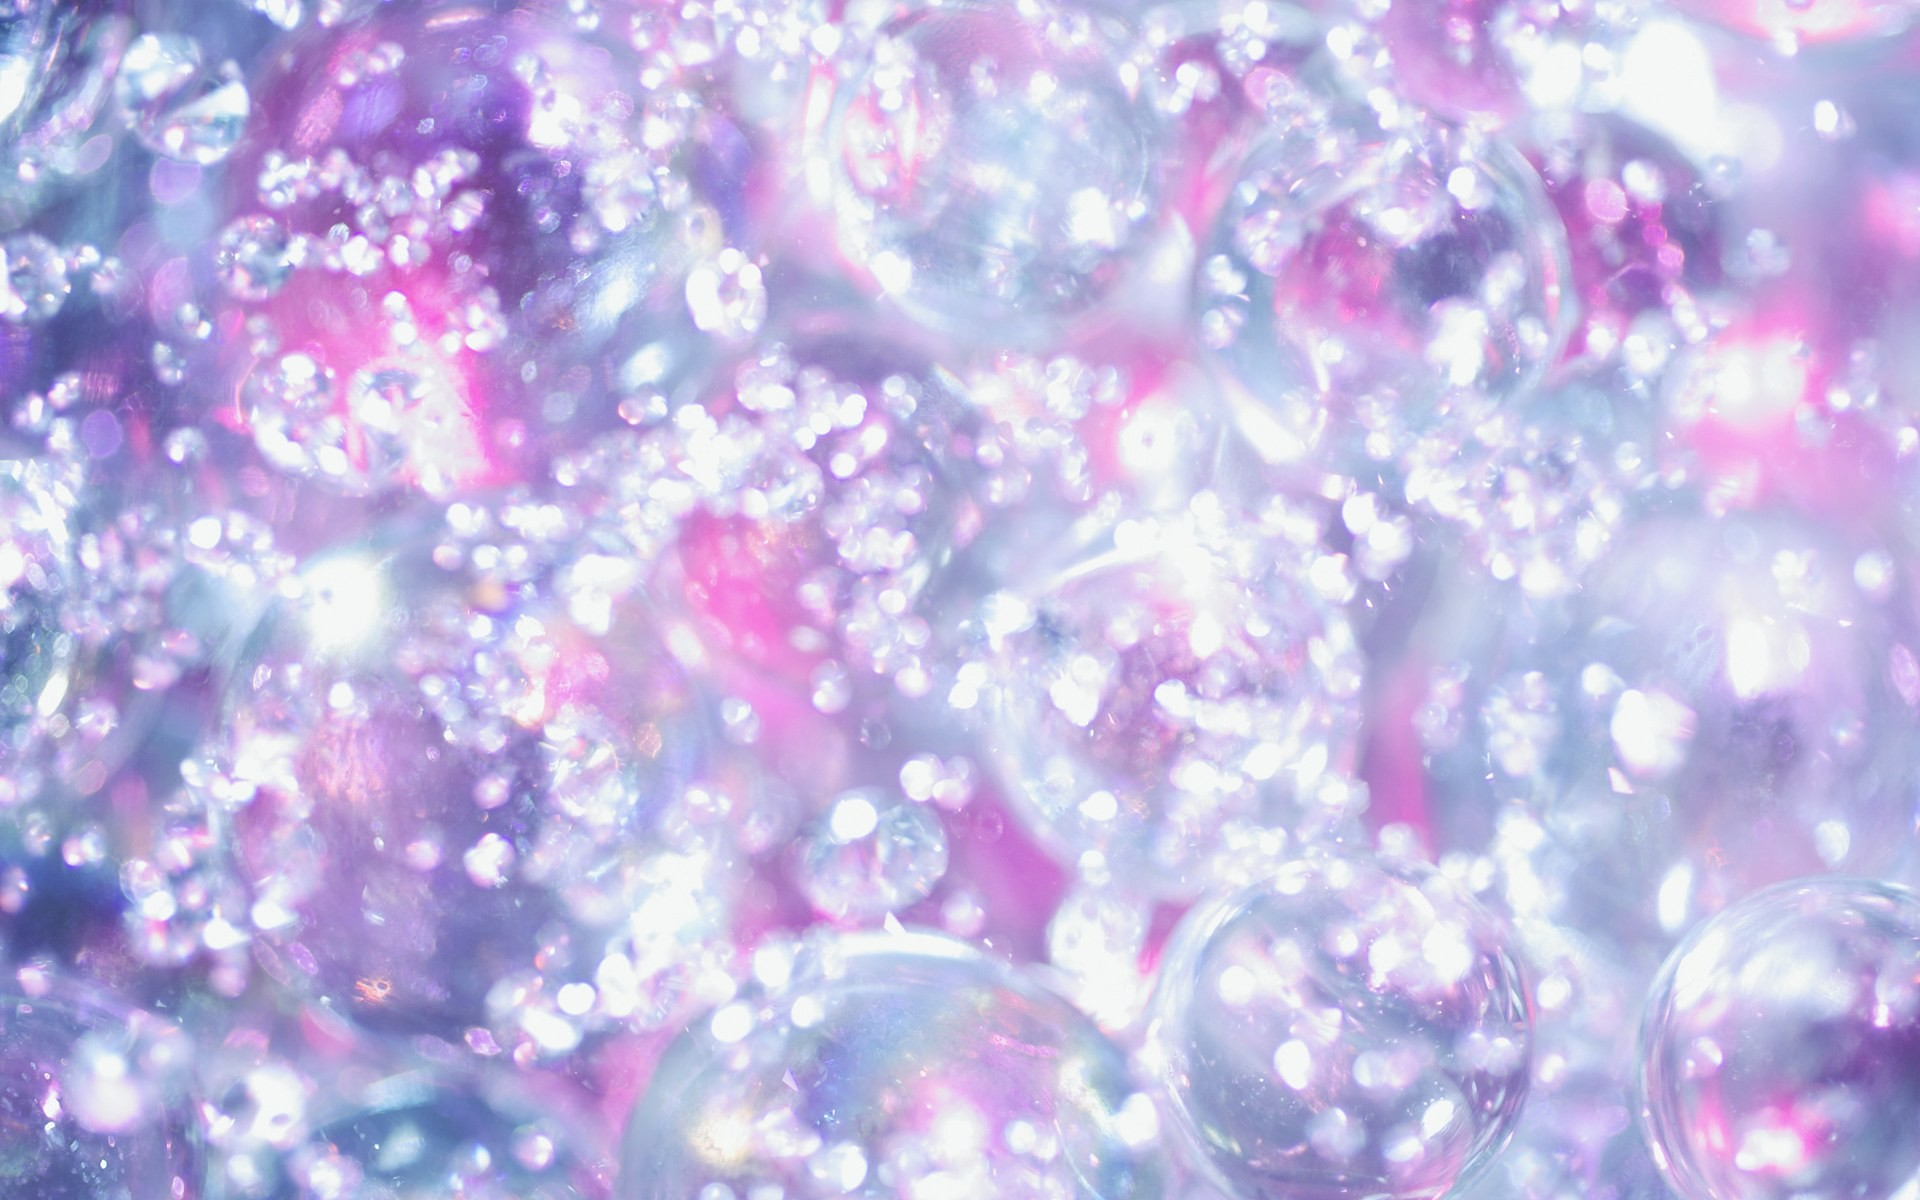 1920x1200 Sparkling Diamonds and Crystals - Romantic Sparkling Backgrounds 1920 .